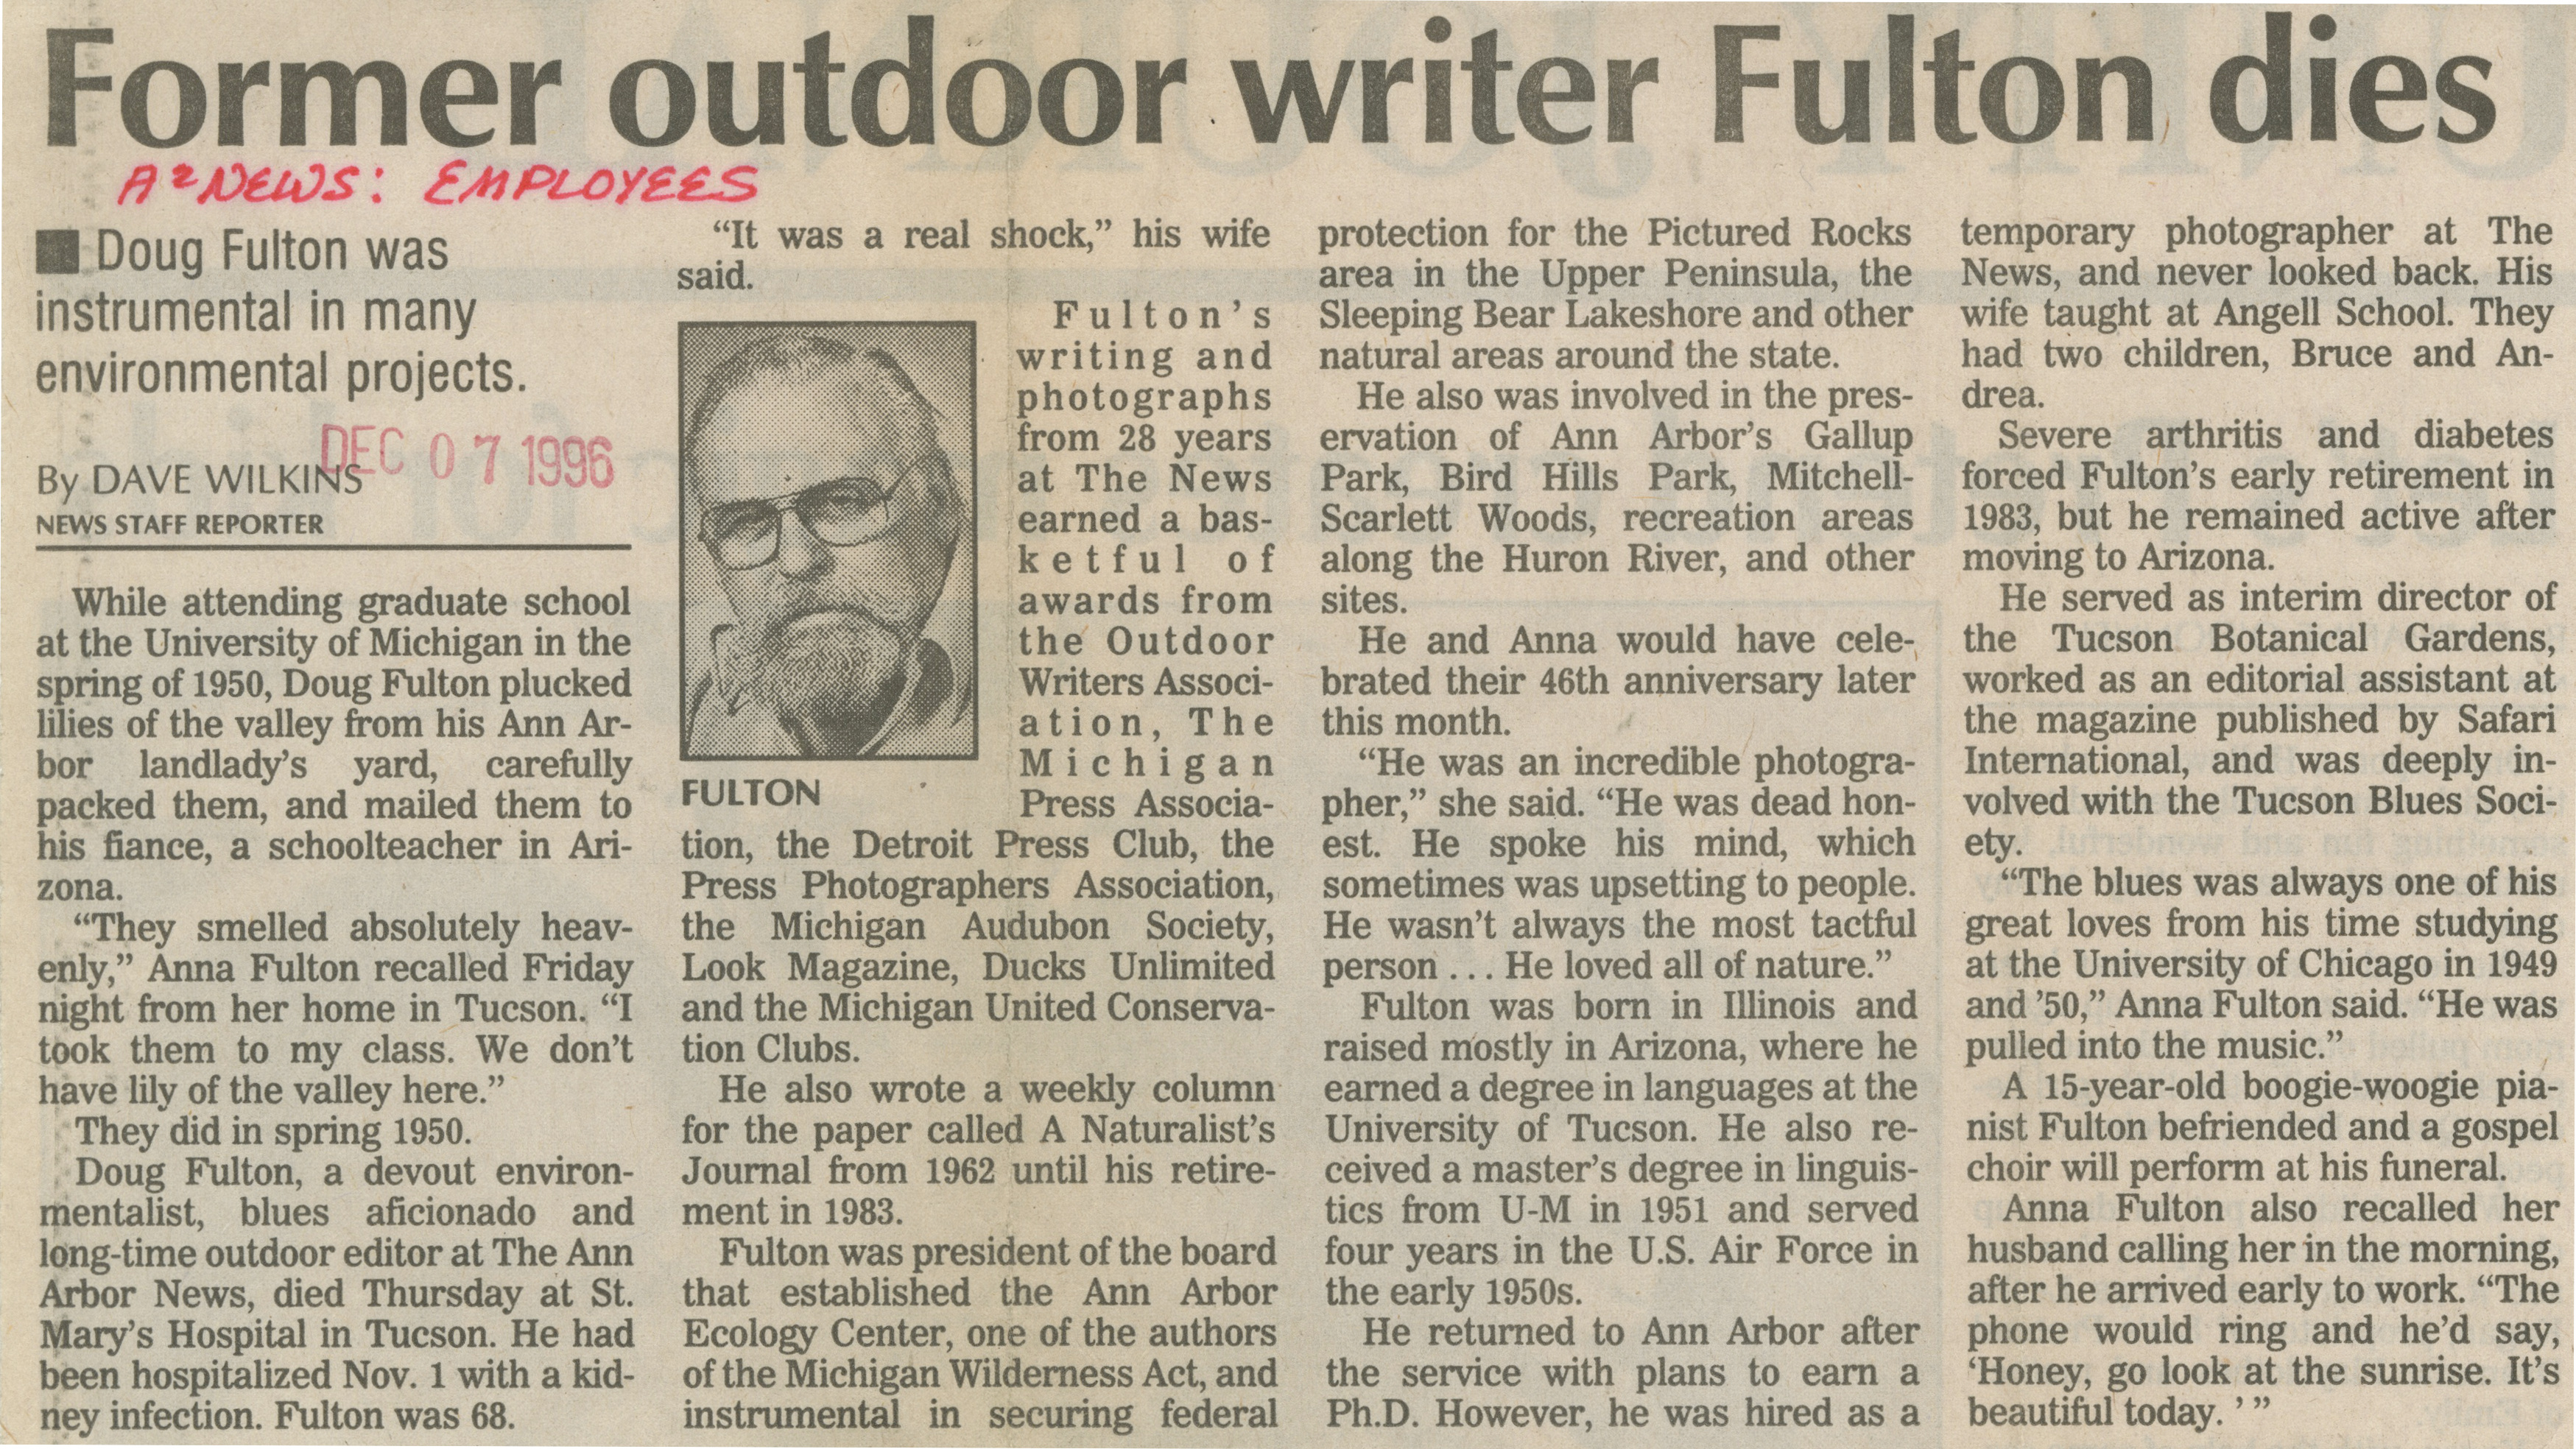 Former Outdoor Writer Fulton Dies image